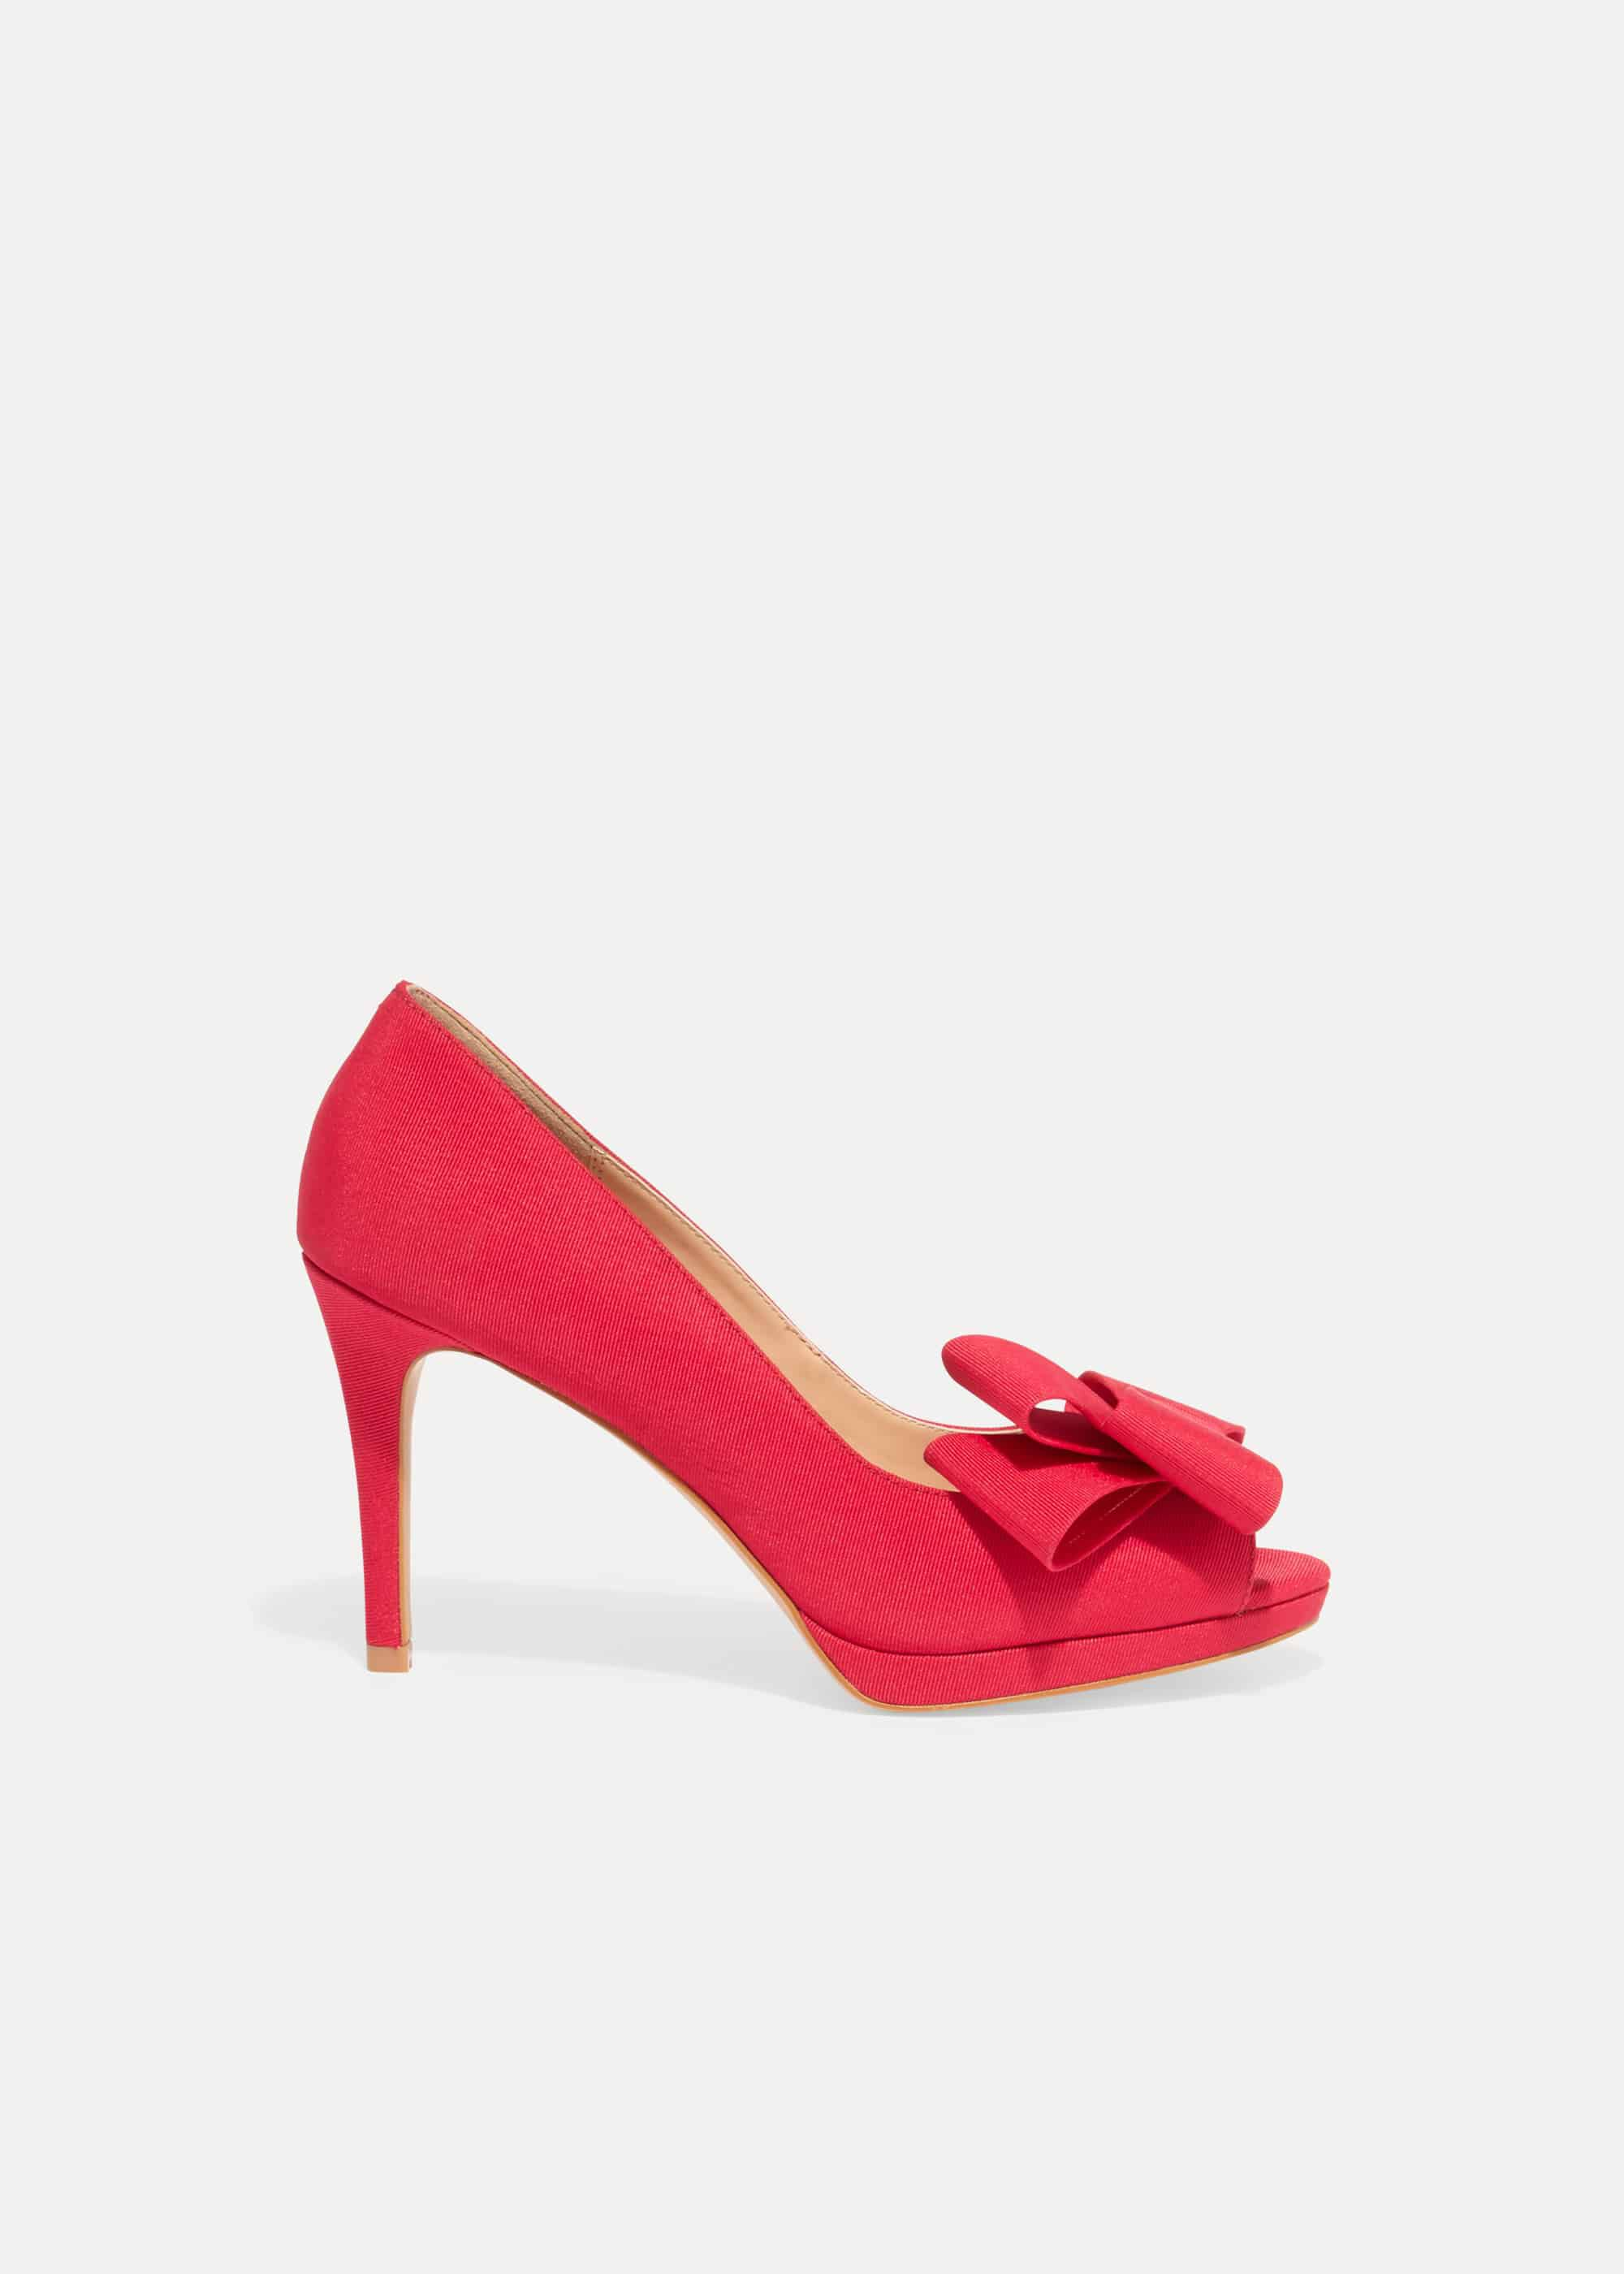 Phase Eight Tilly Peep Toe Shoes, Pink, Sandals